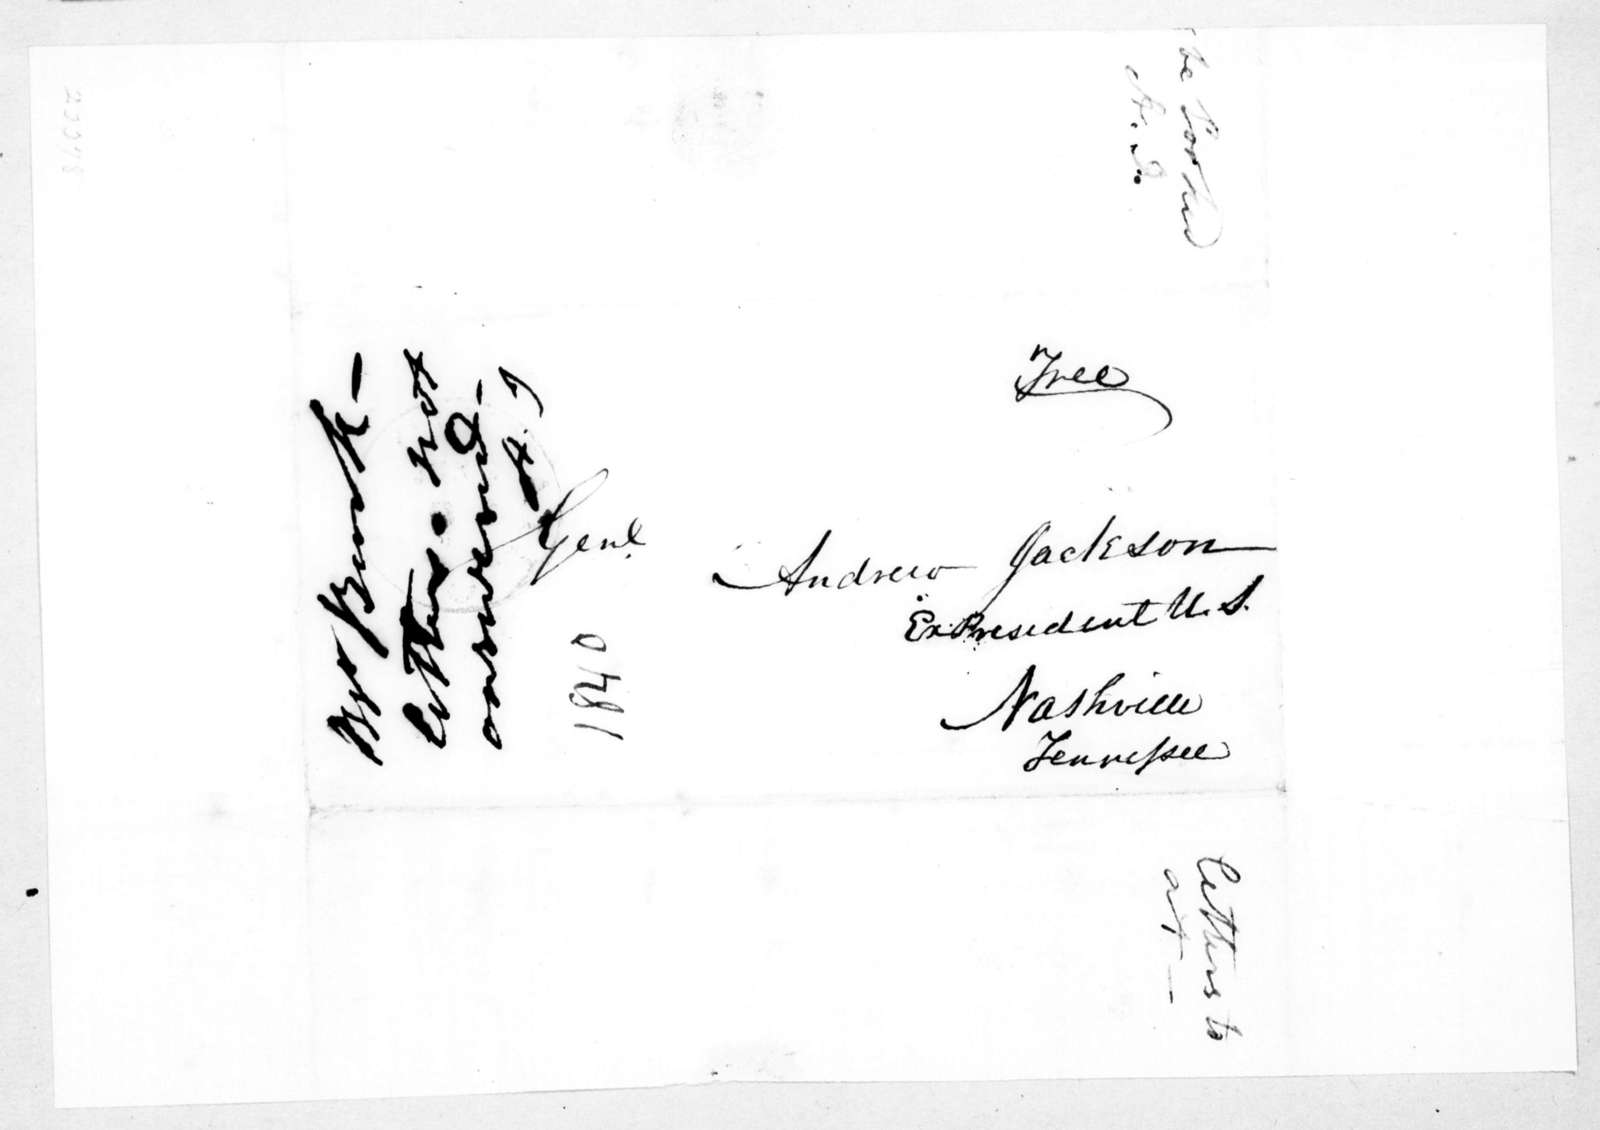 Andrew Jackson to Francis Preston Blair, May 22, 1840